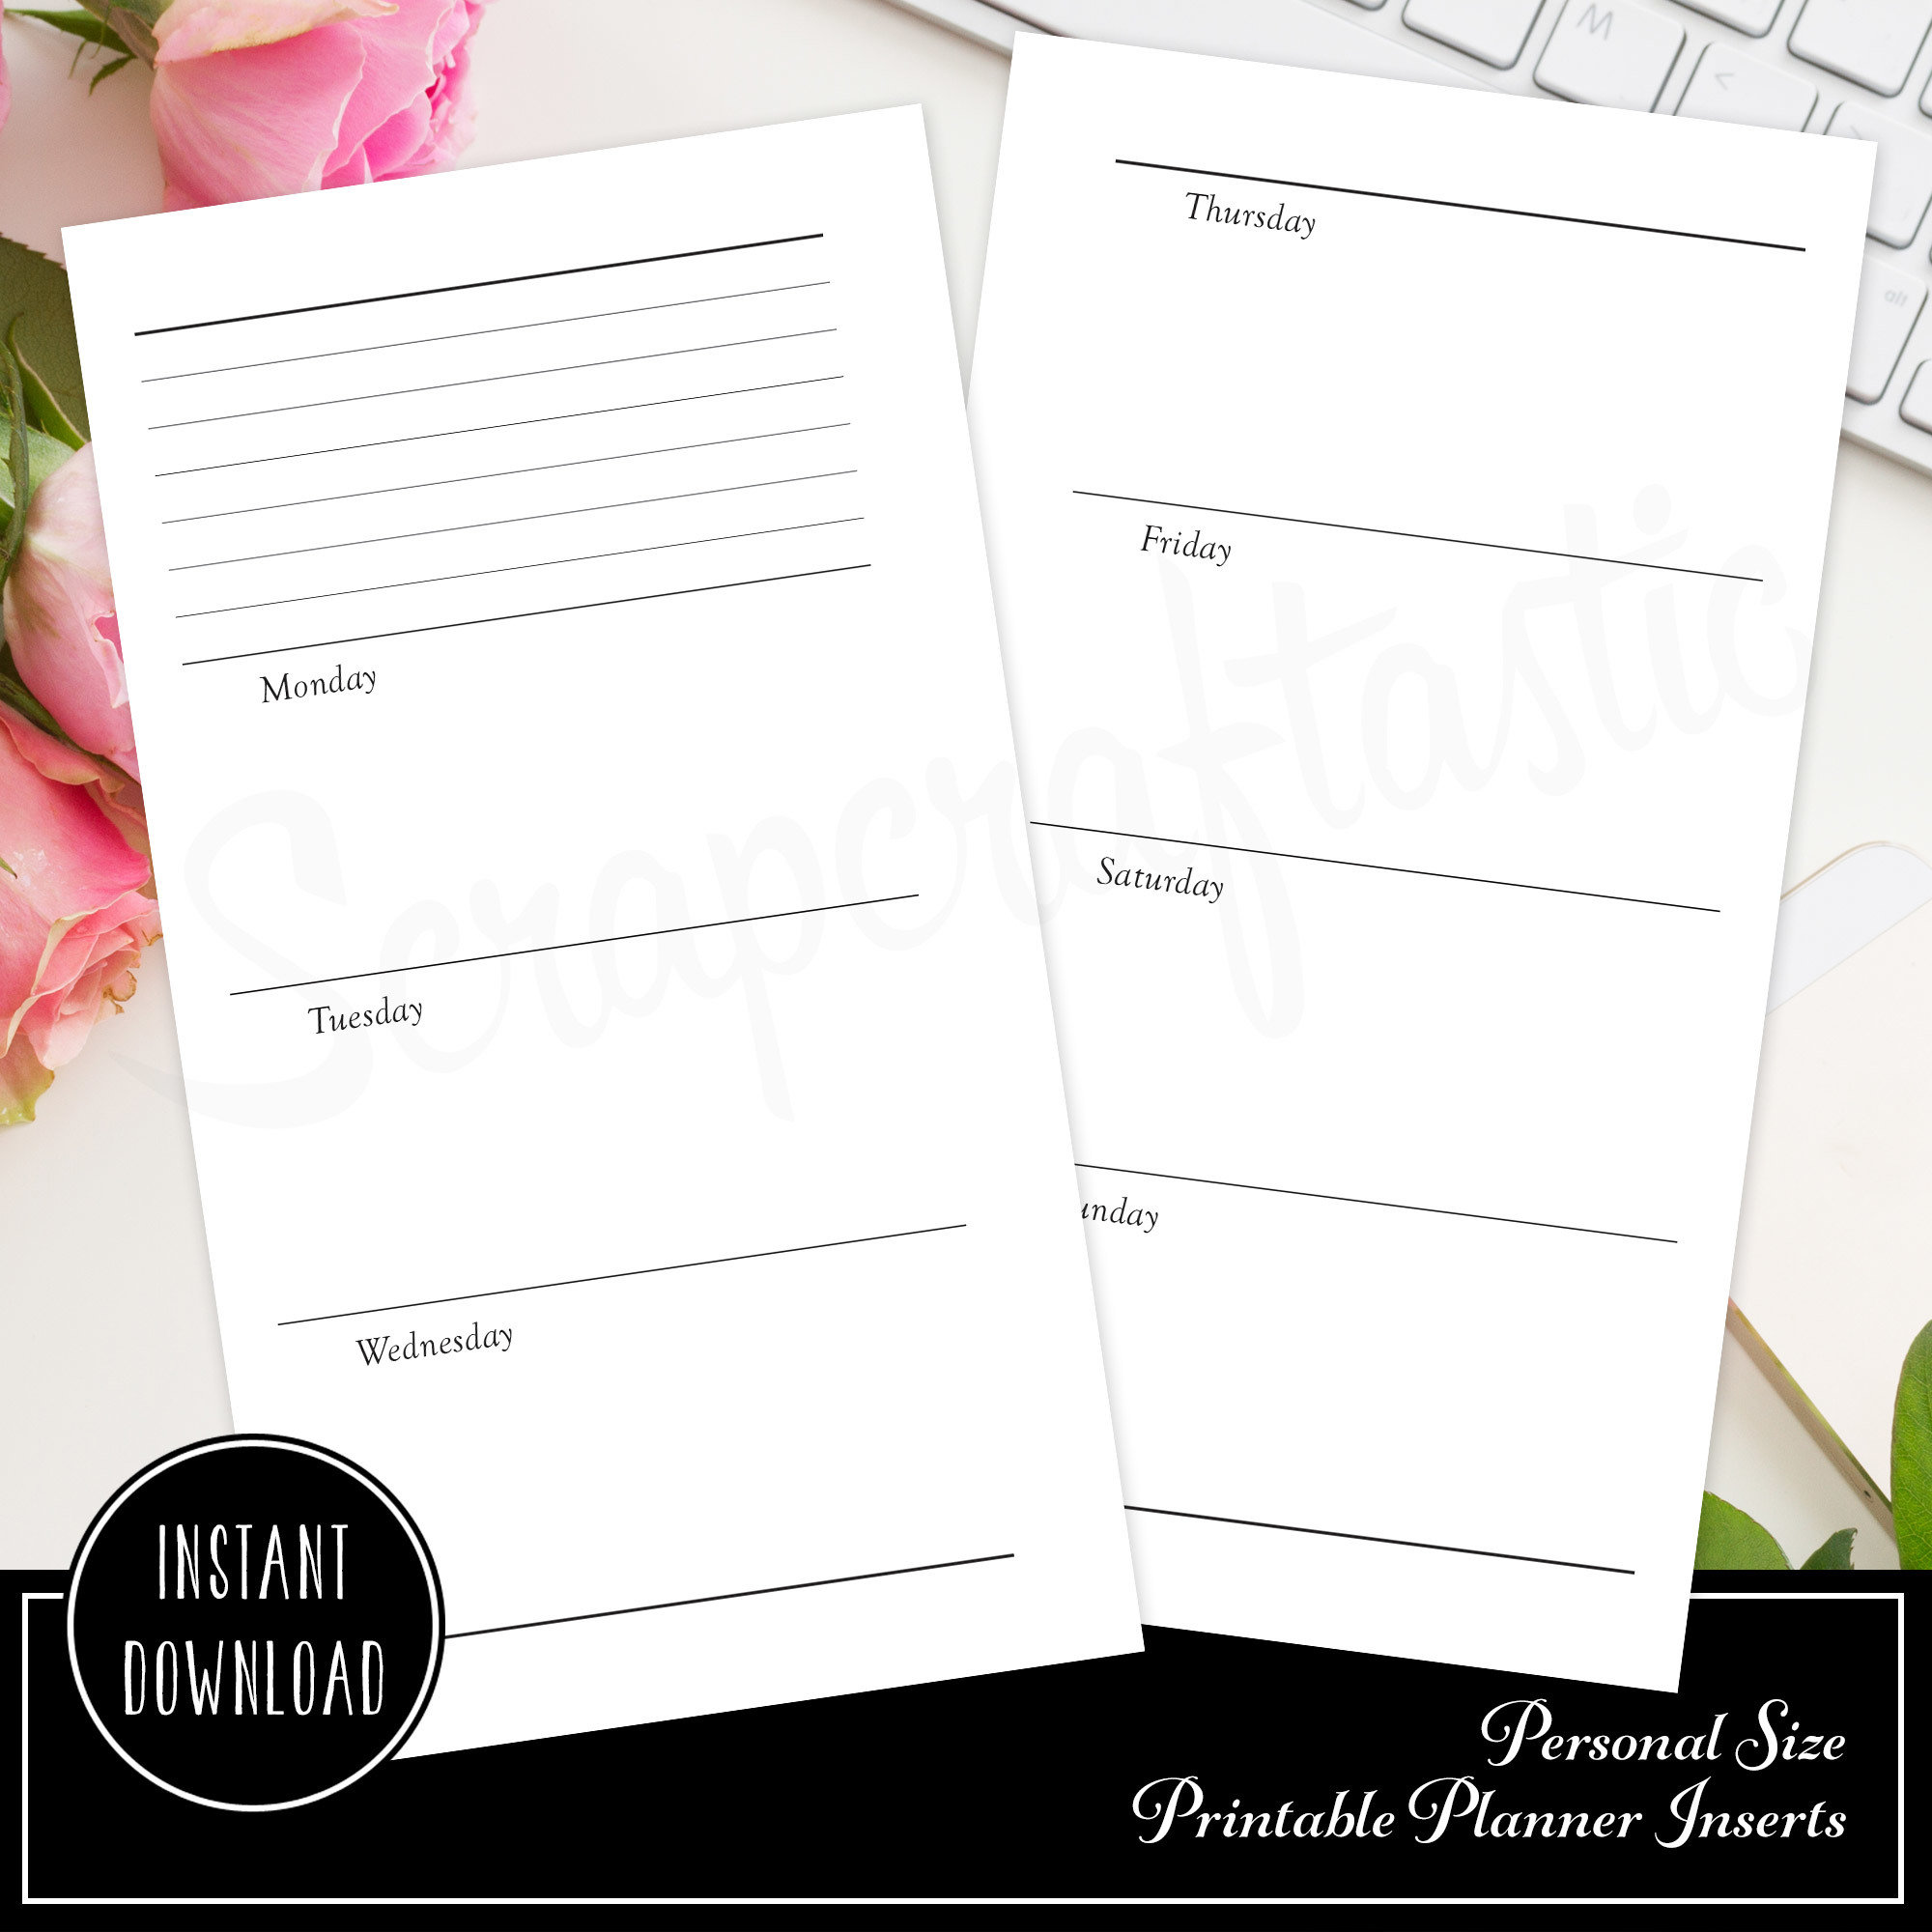 Horizontal Undated Week on Two Pages (WO2P) Personal Size Ring Bound or Traveler's Notebook Printable Planner Inserts 00240